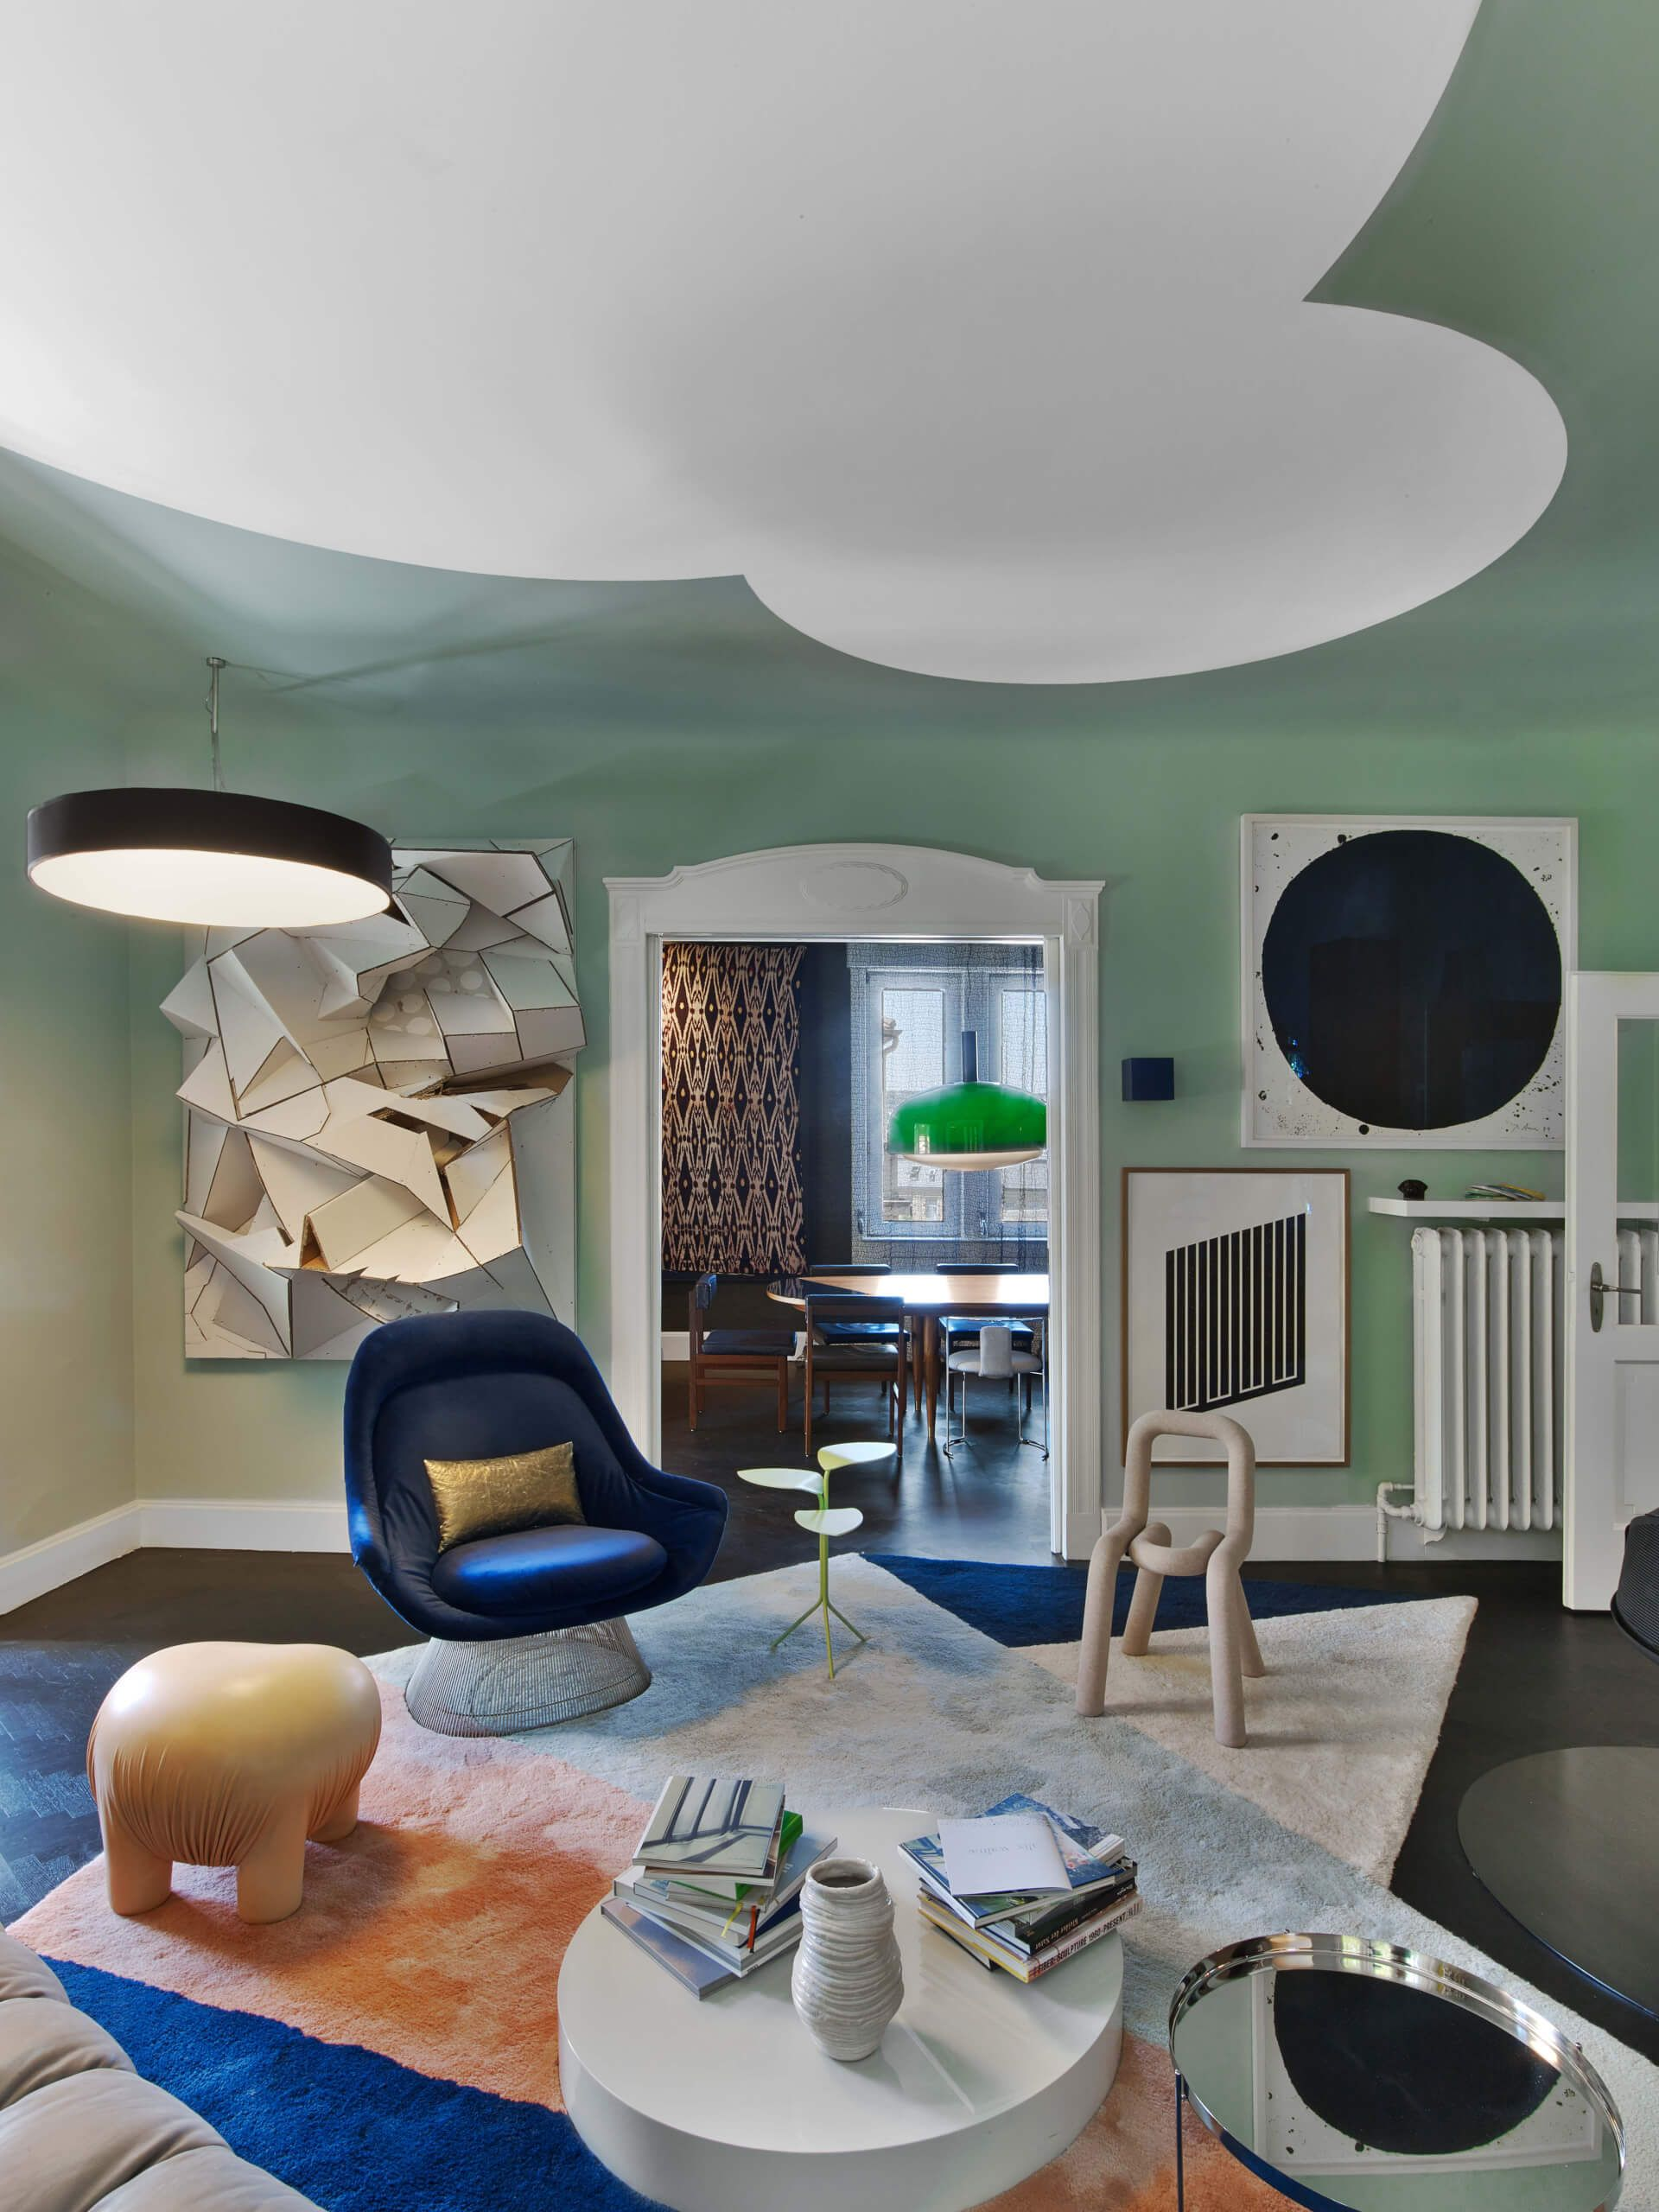 Mix of furniture nonagon style showcasing eclectic interior design by ippolito fleitz group